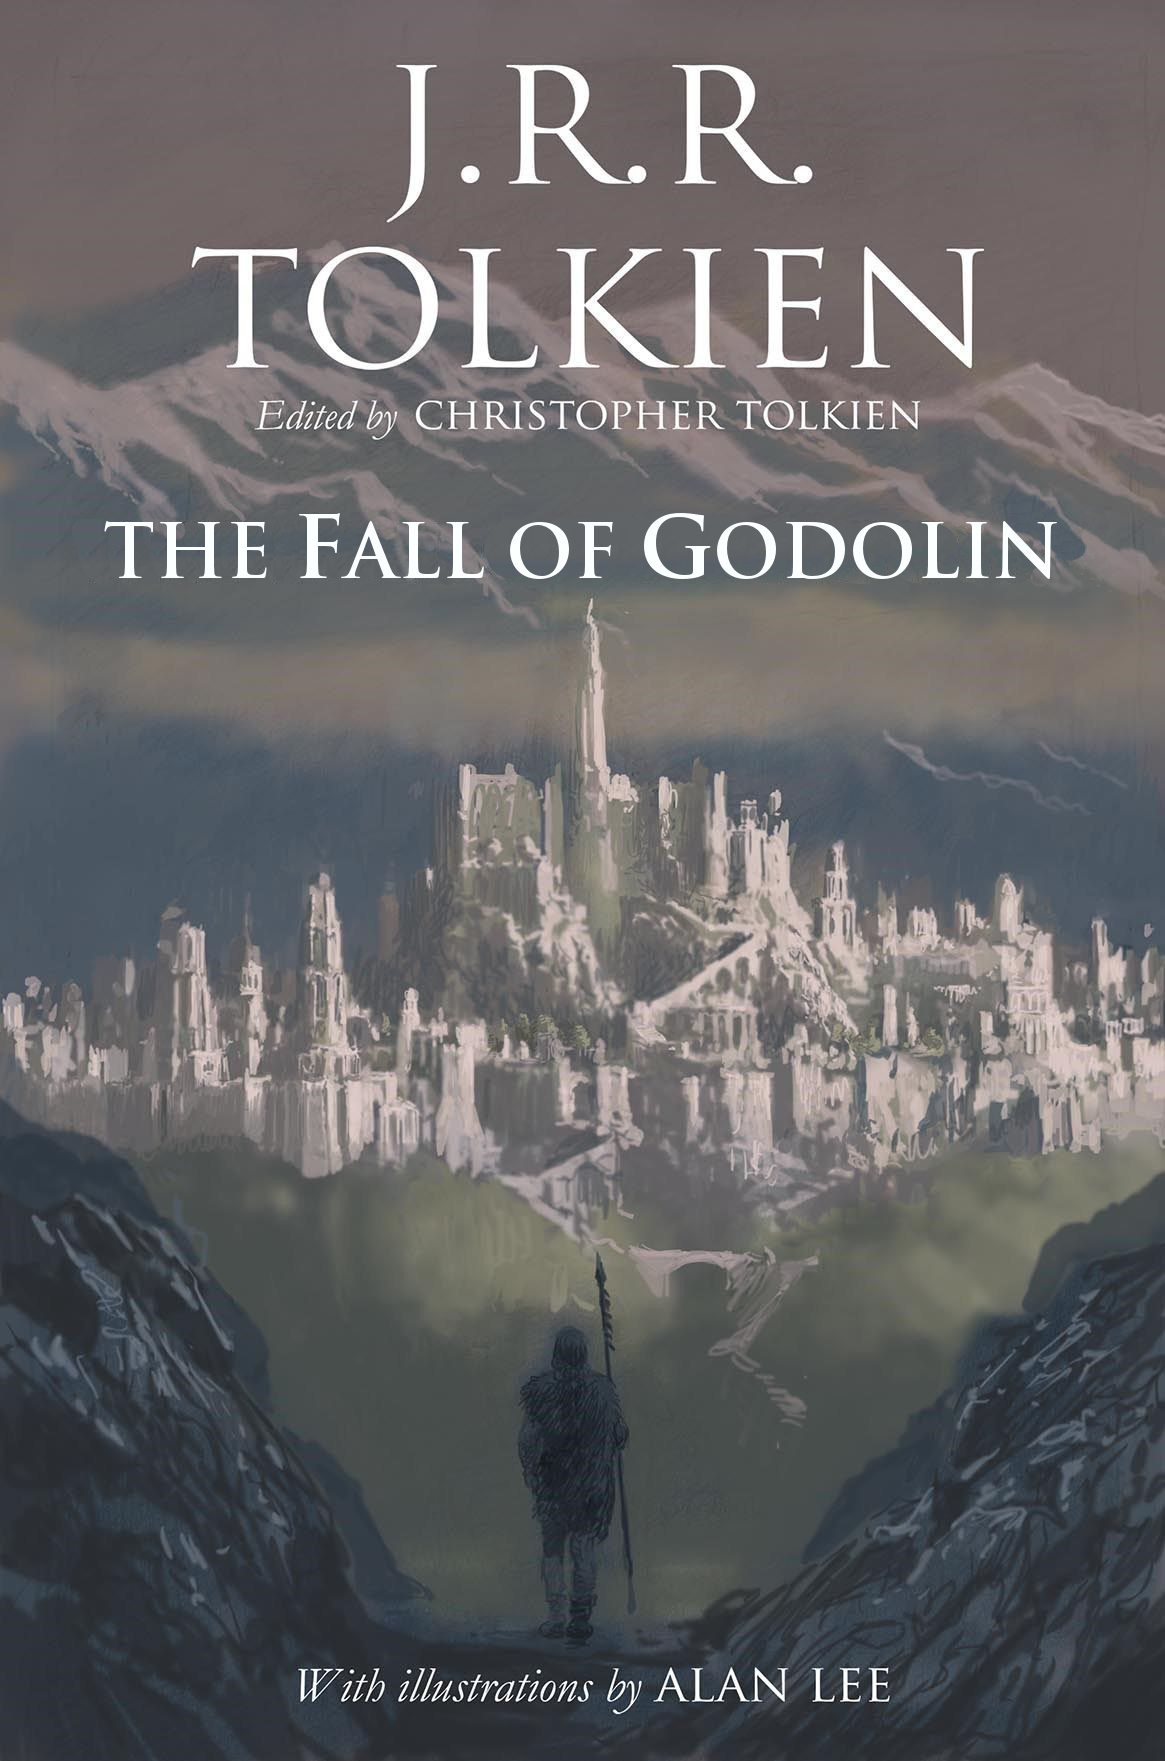 THE FALL OF GODOLIN